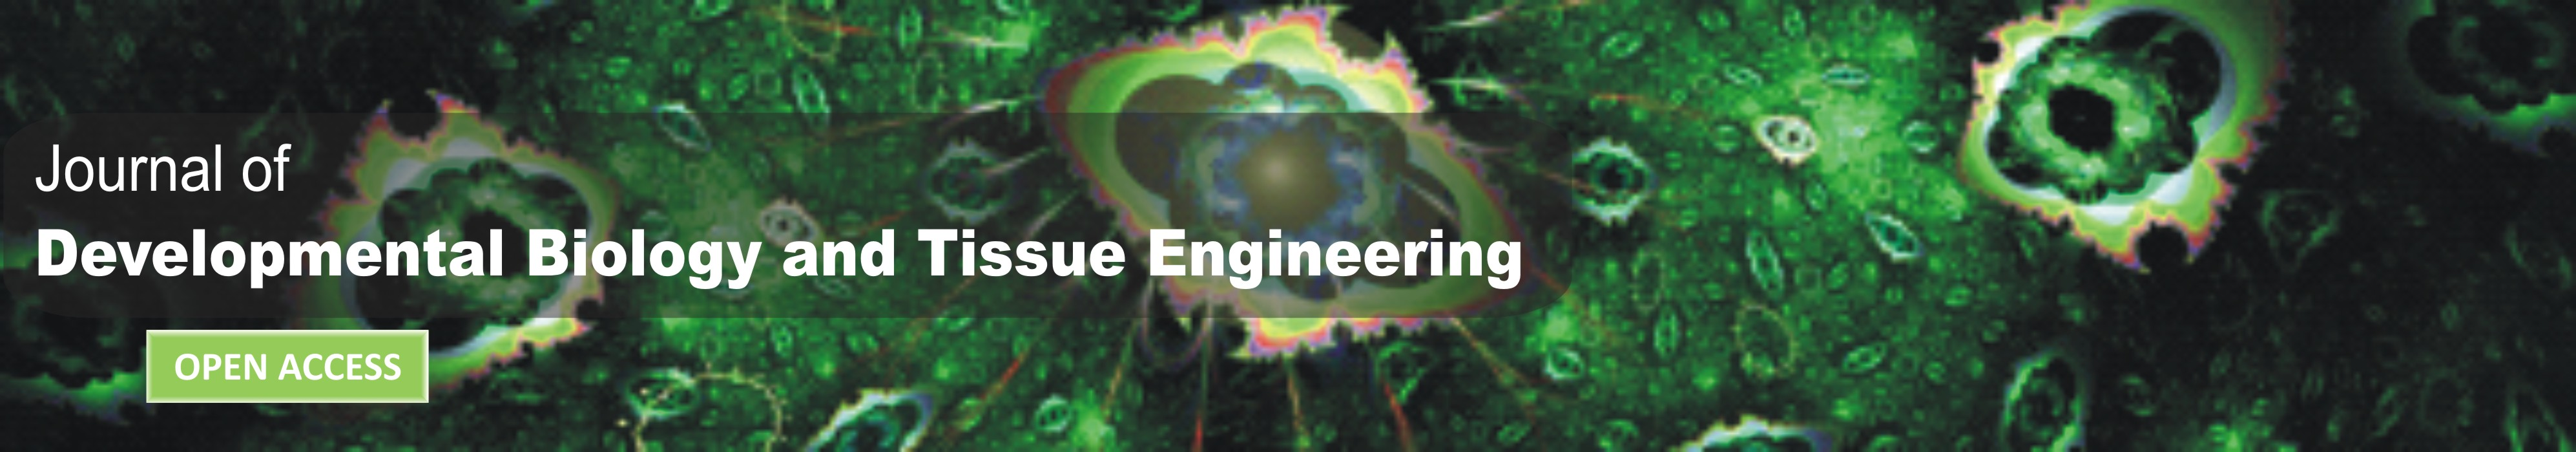 Journal of Developmental Biology and Tissue Engineering